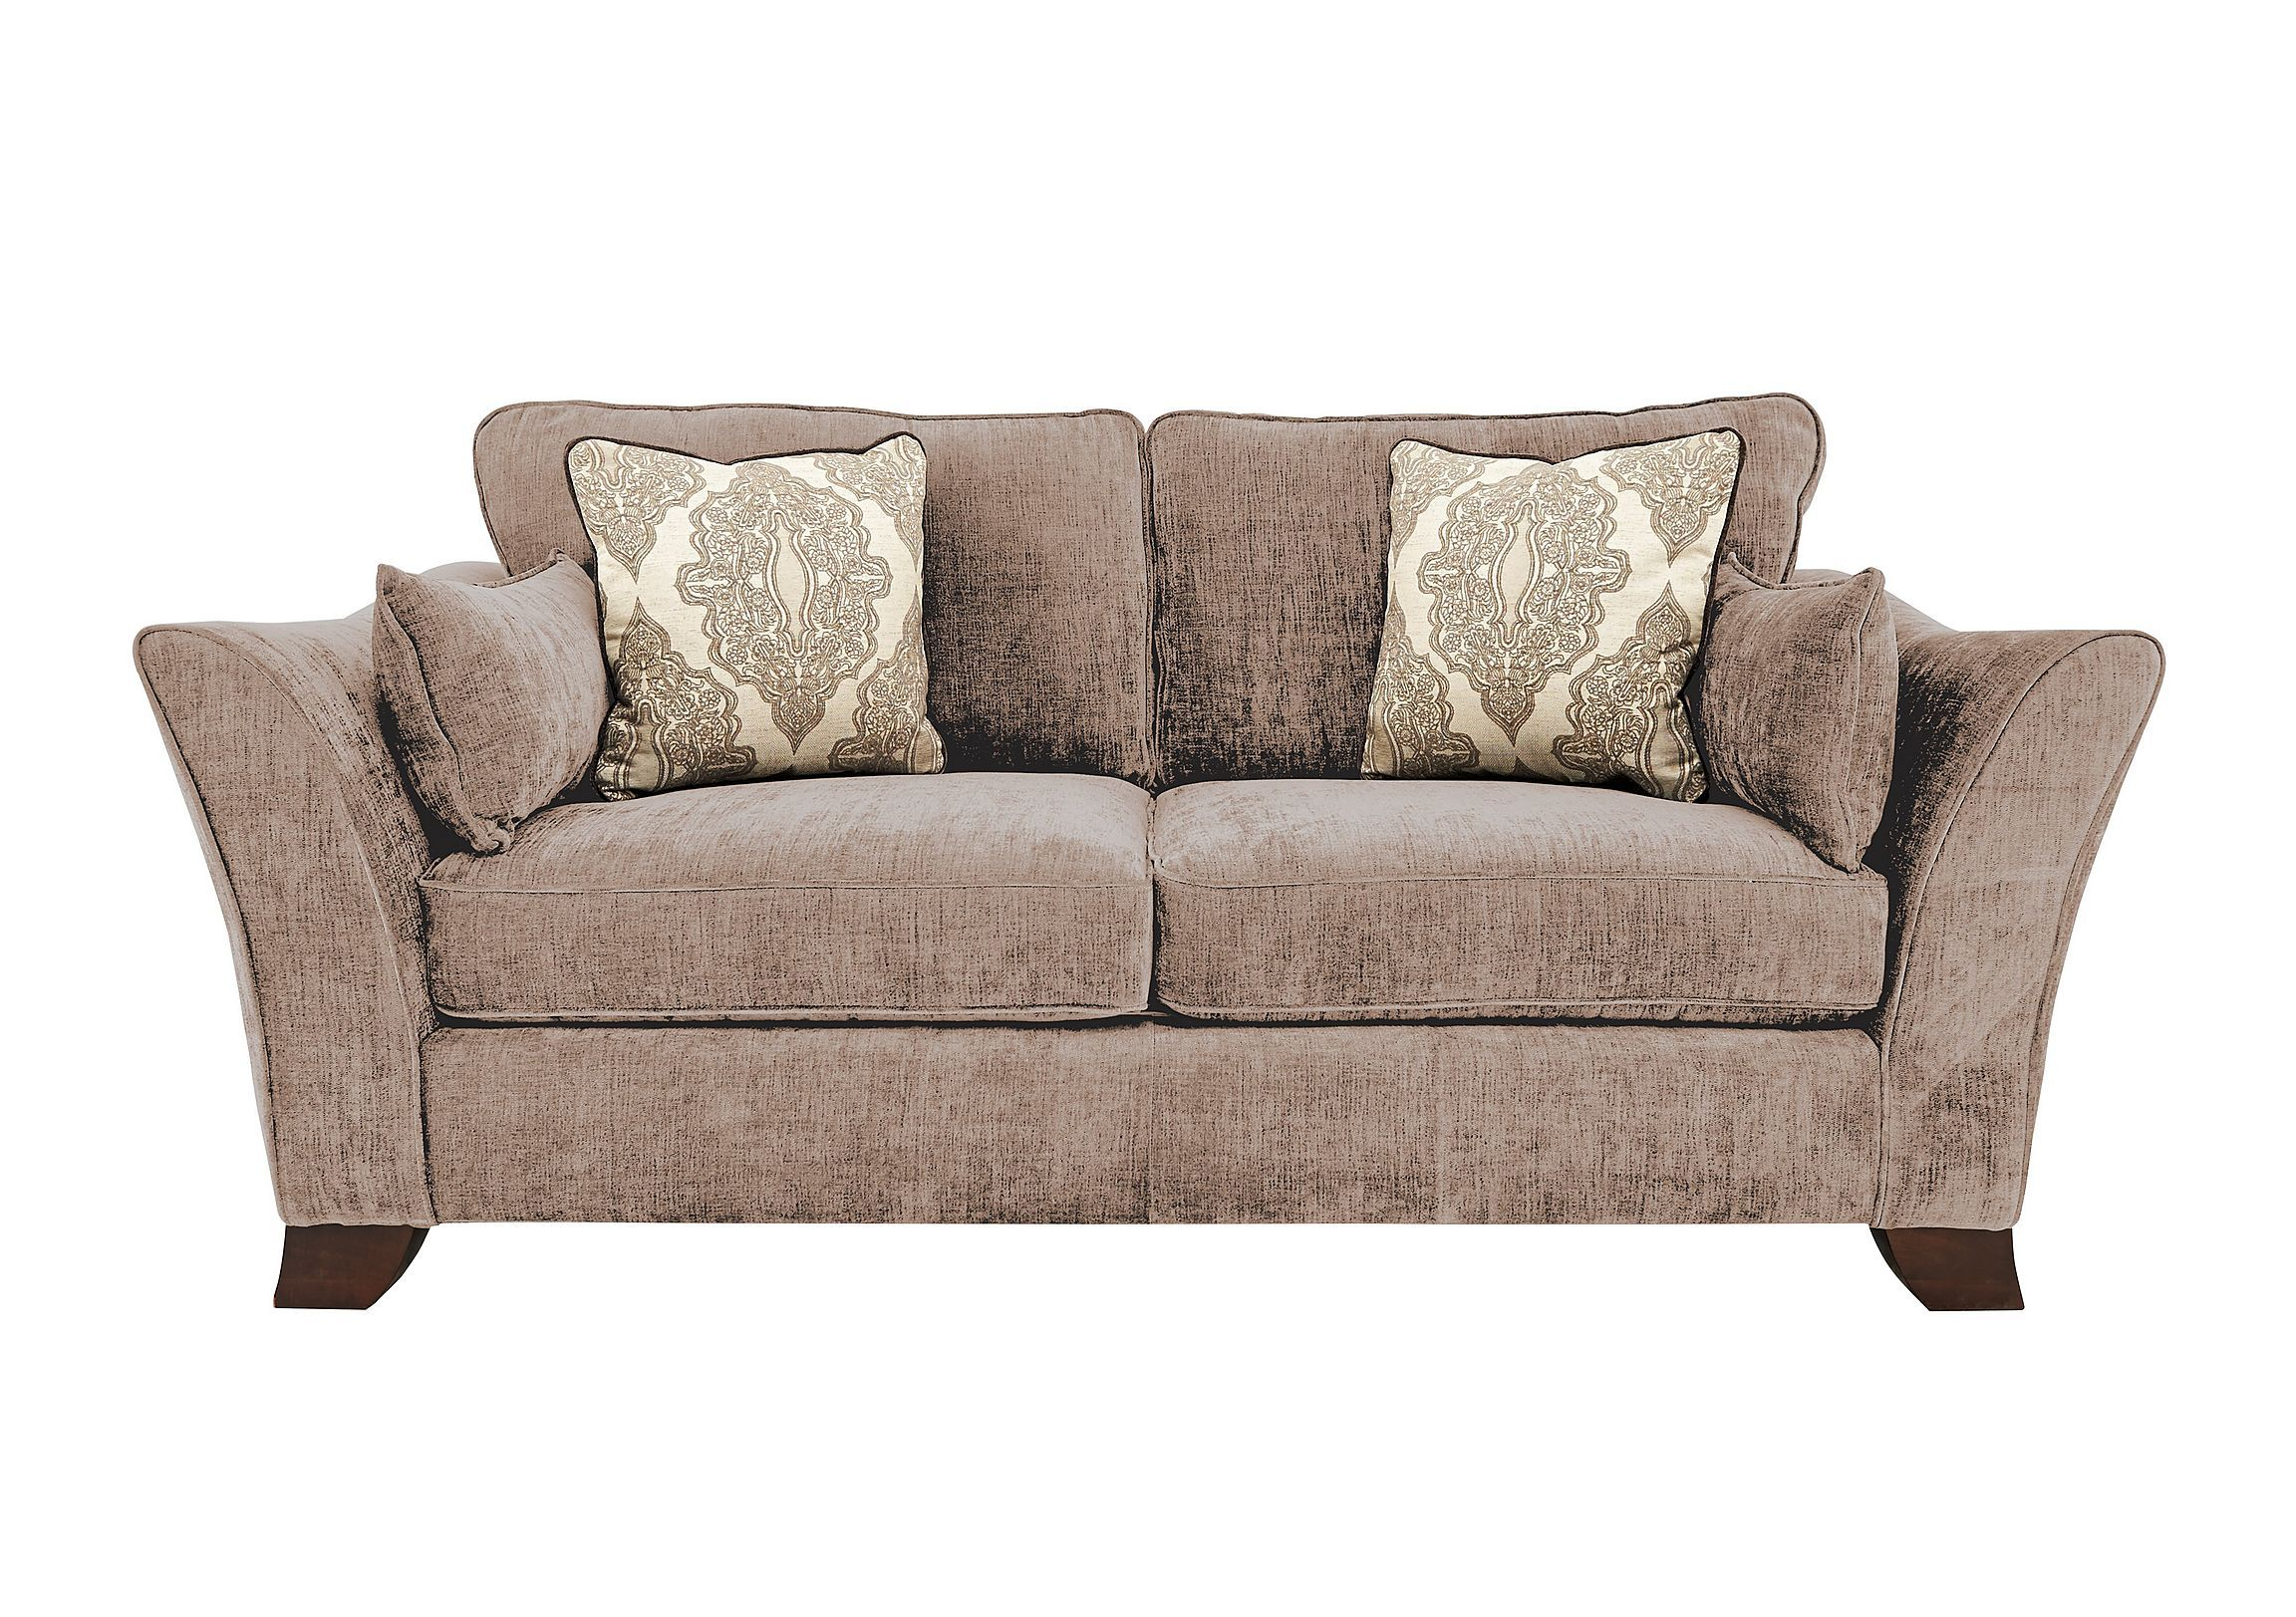 Great Style At A Great Price 3 Seater Classic Back Sofa Choice Of Soft Neutral Fabrics Furniture Village Luxury Sofa Modern Fabric Sofa